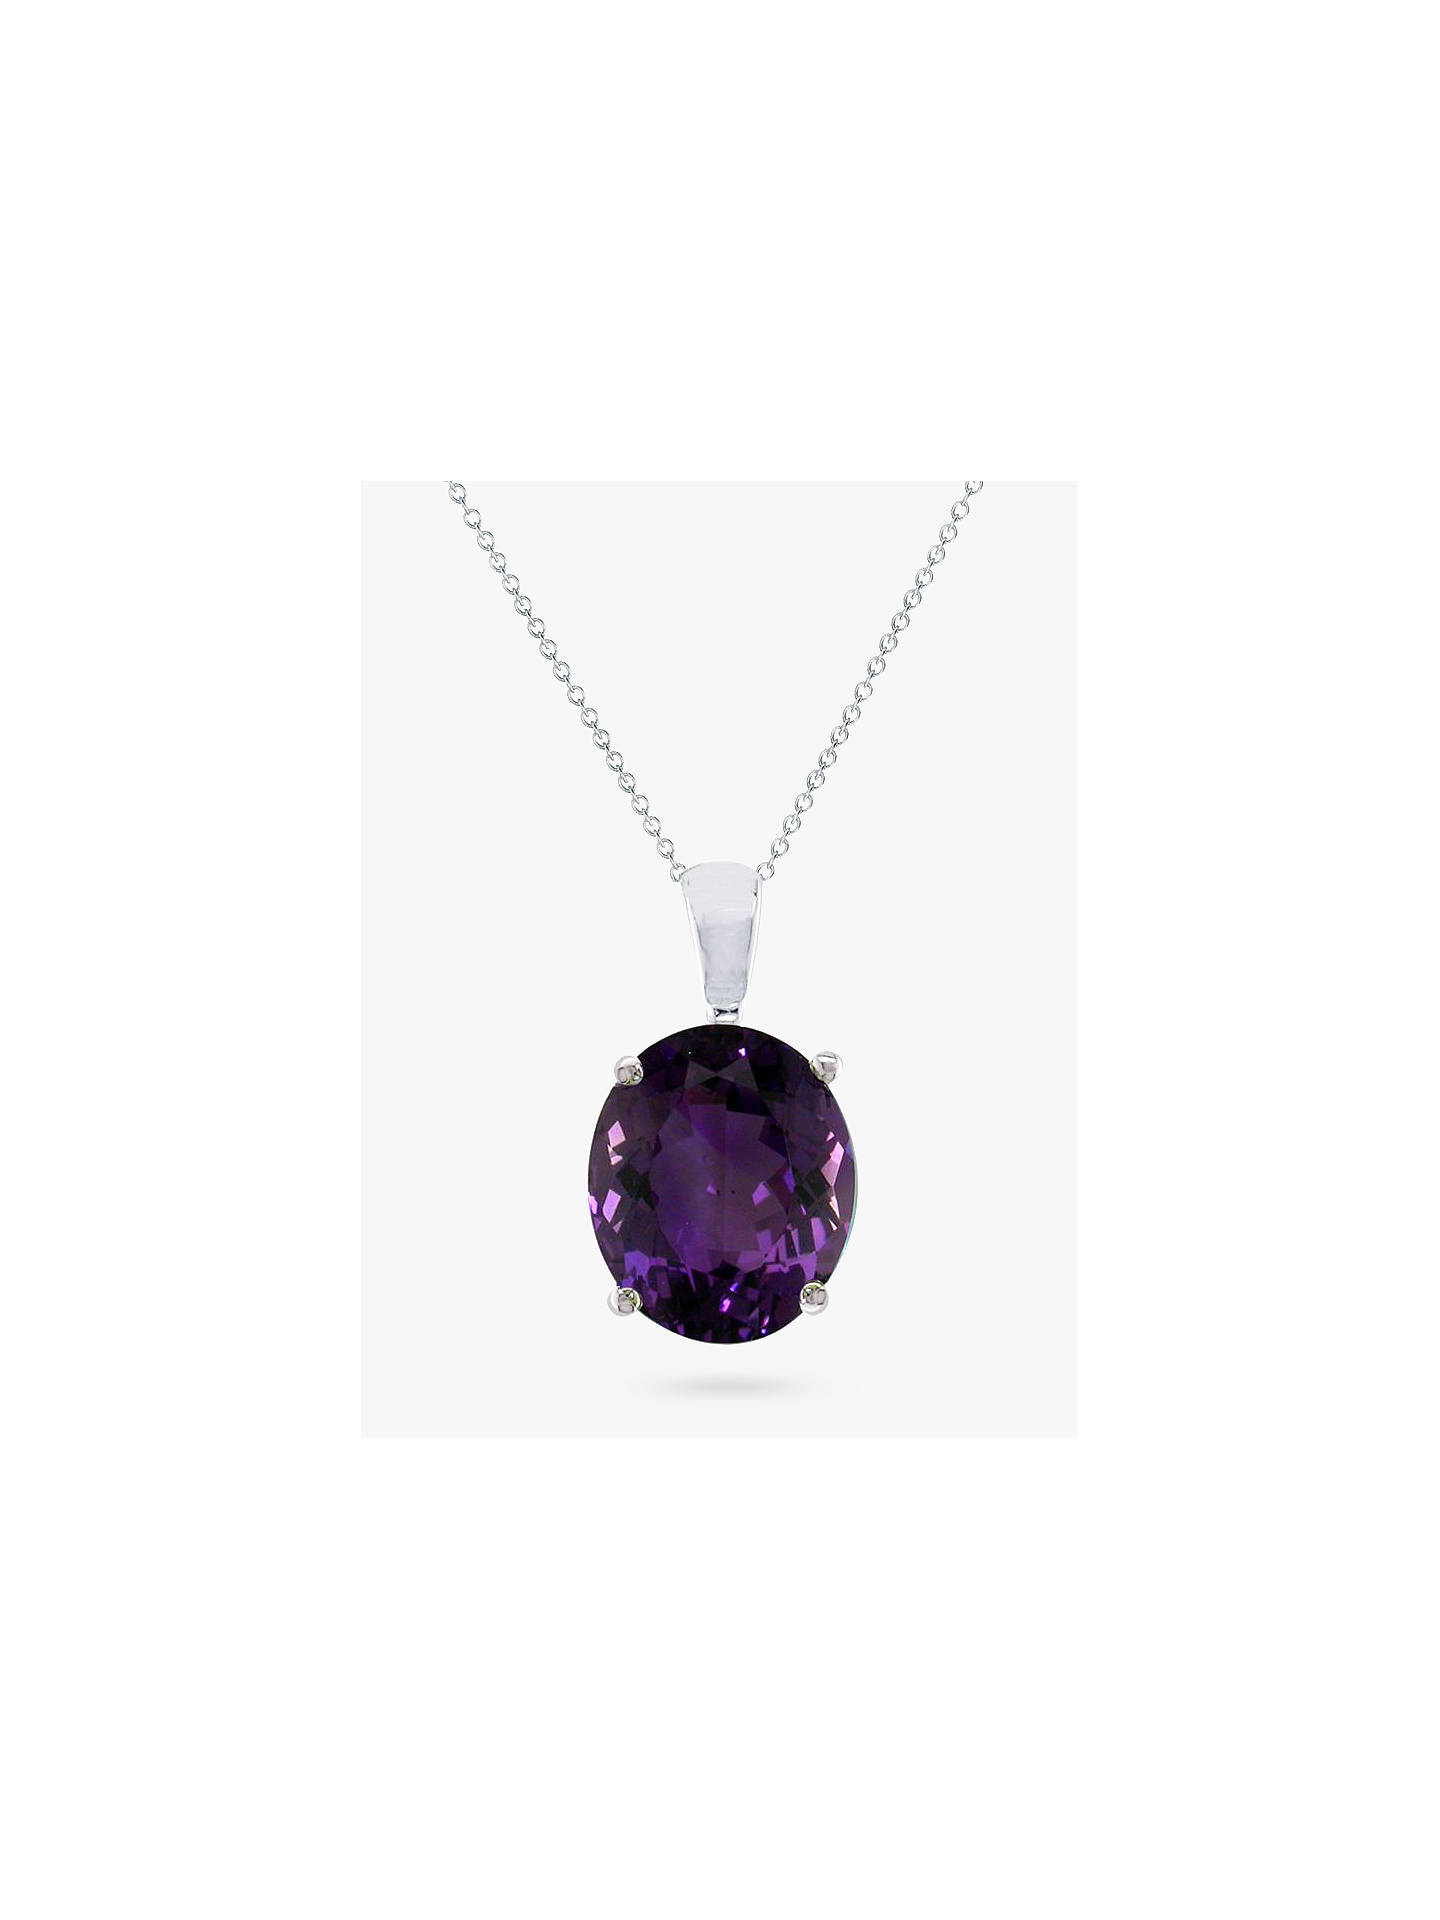 Buy E.W Adams 9ct White Gold Oval Pendant Necklace, Amethyst Online at johnlewis.com